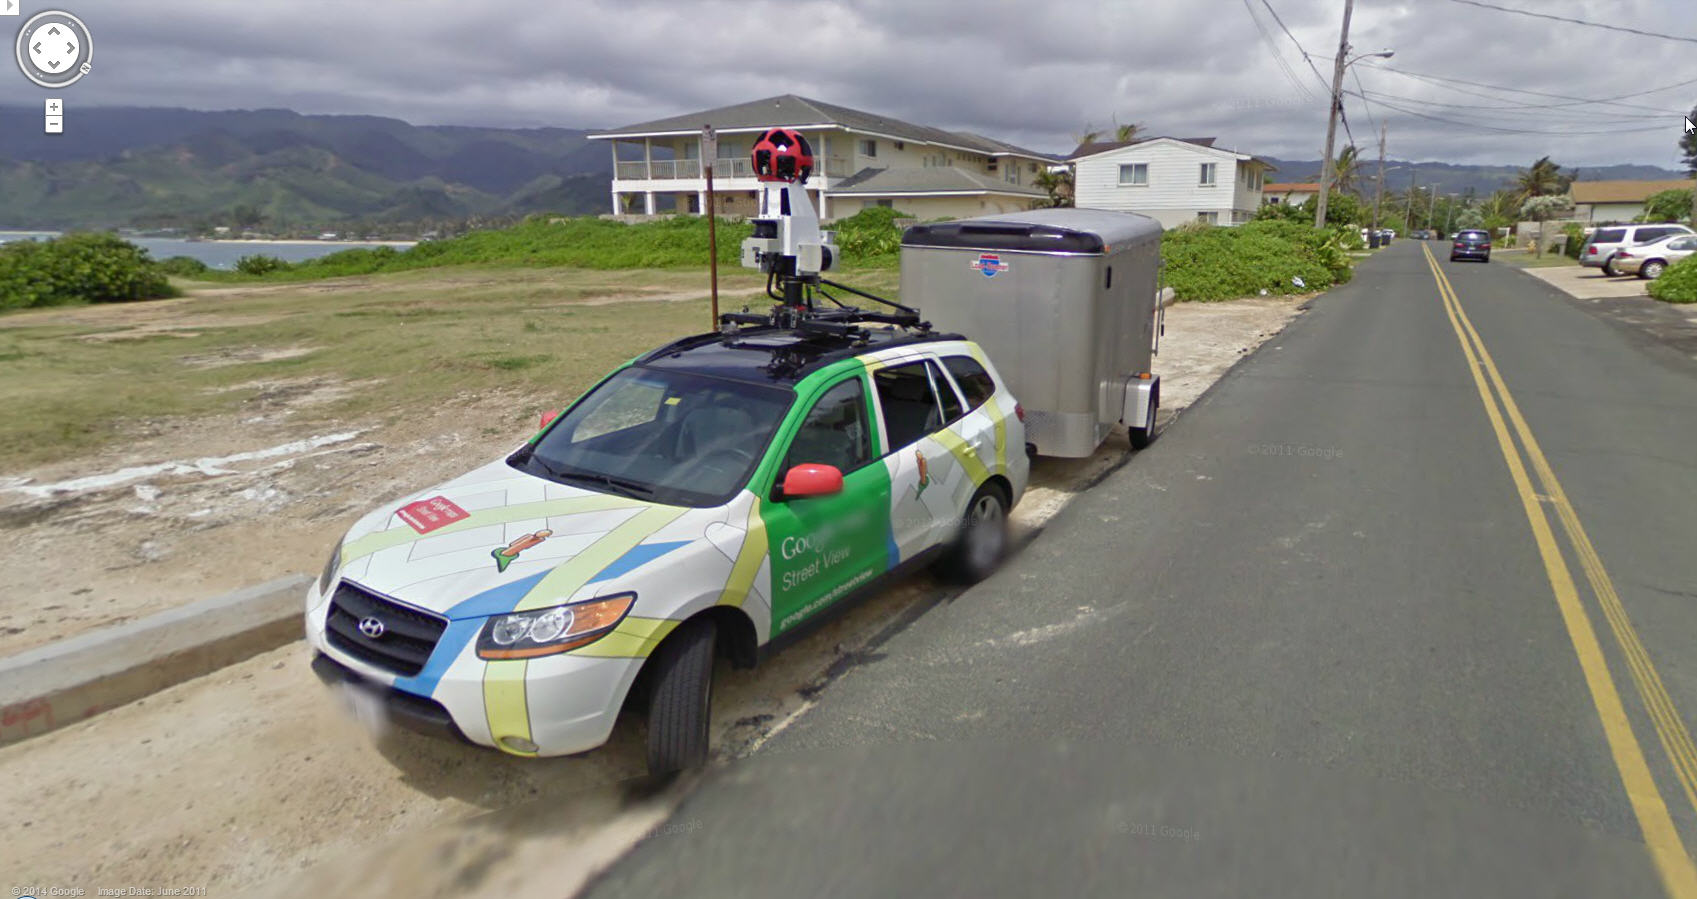 Nice shot of the Google Street View Rig